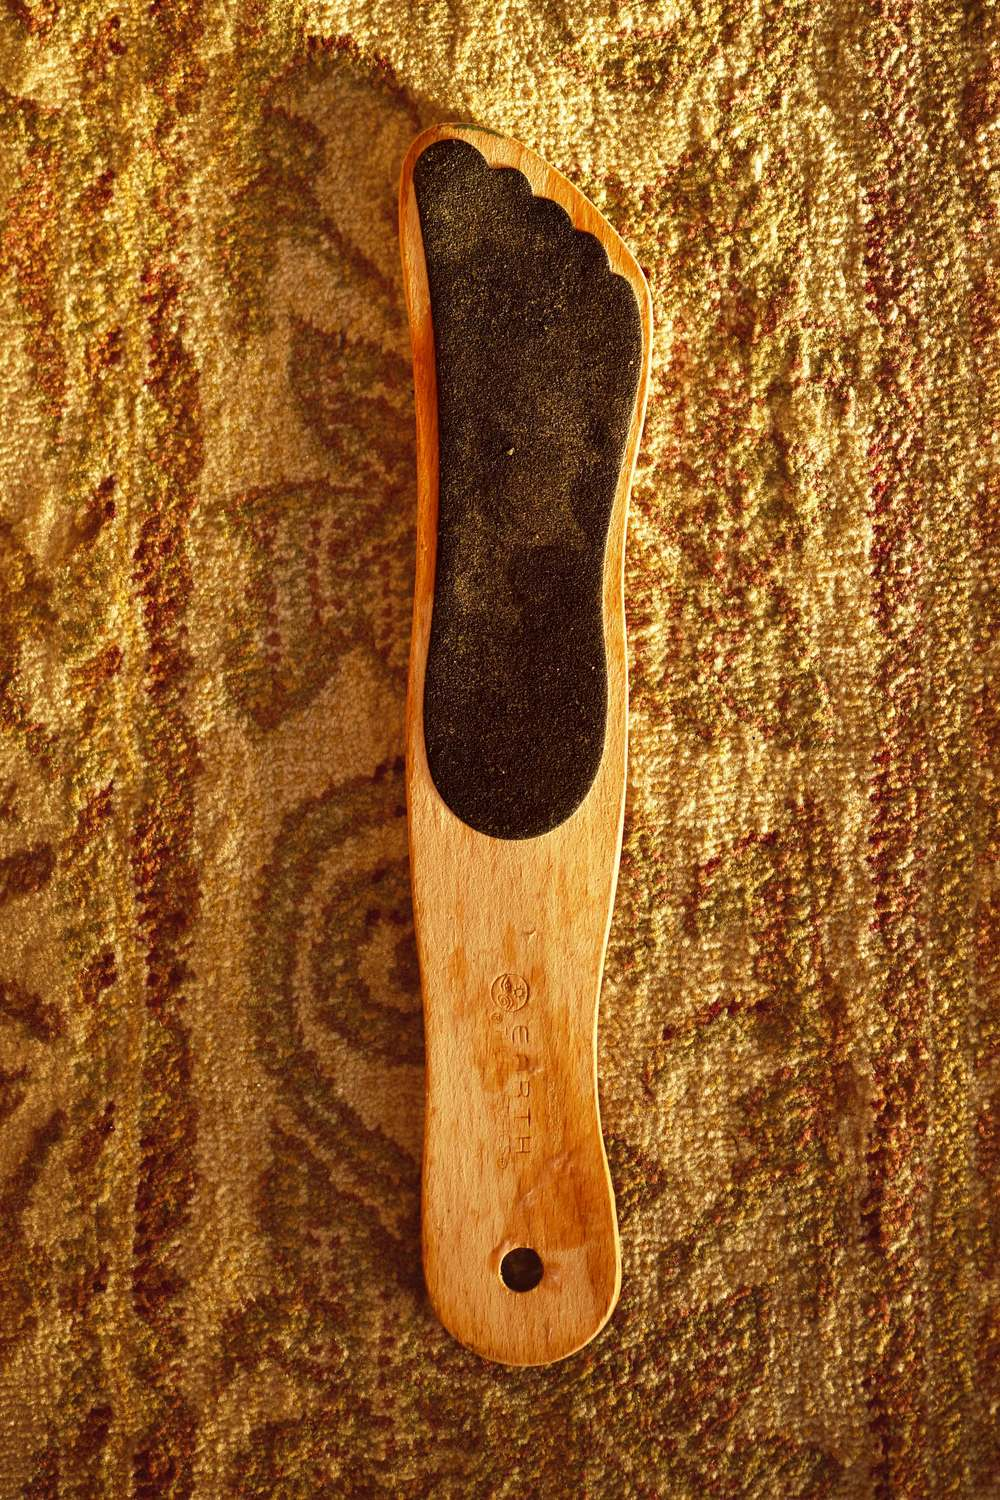 Foot file from Earth Therapeutics. Image©sourcingstyle.com